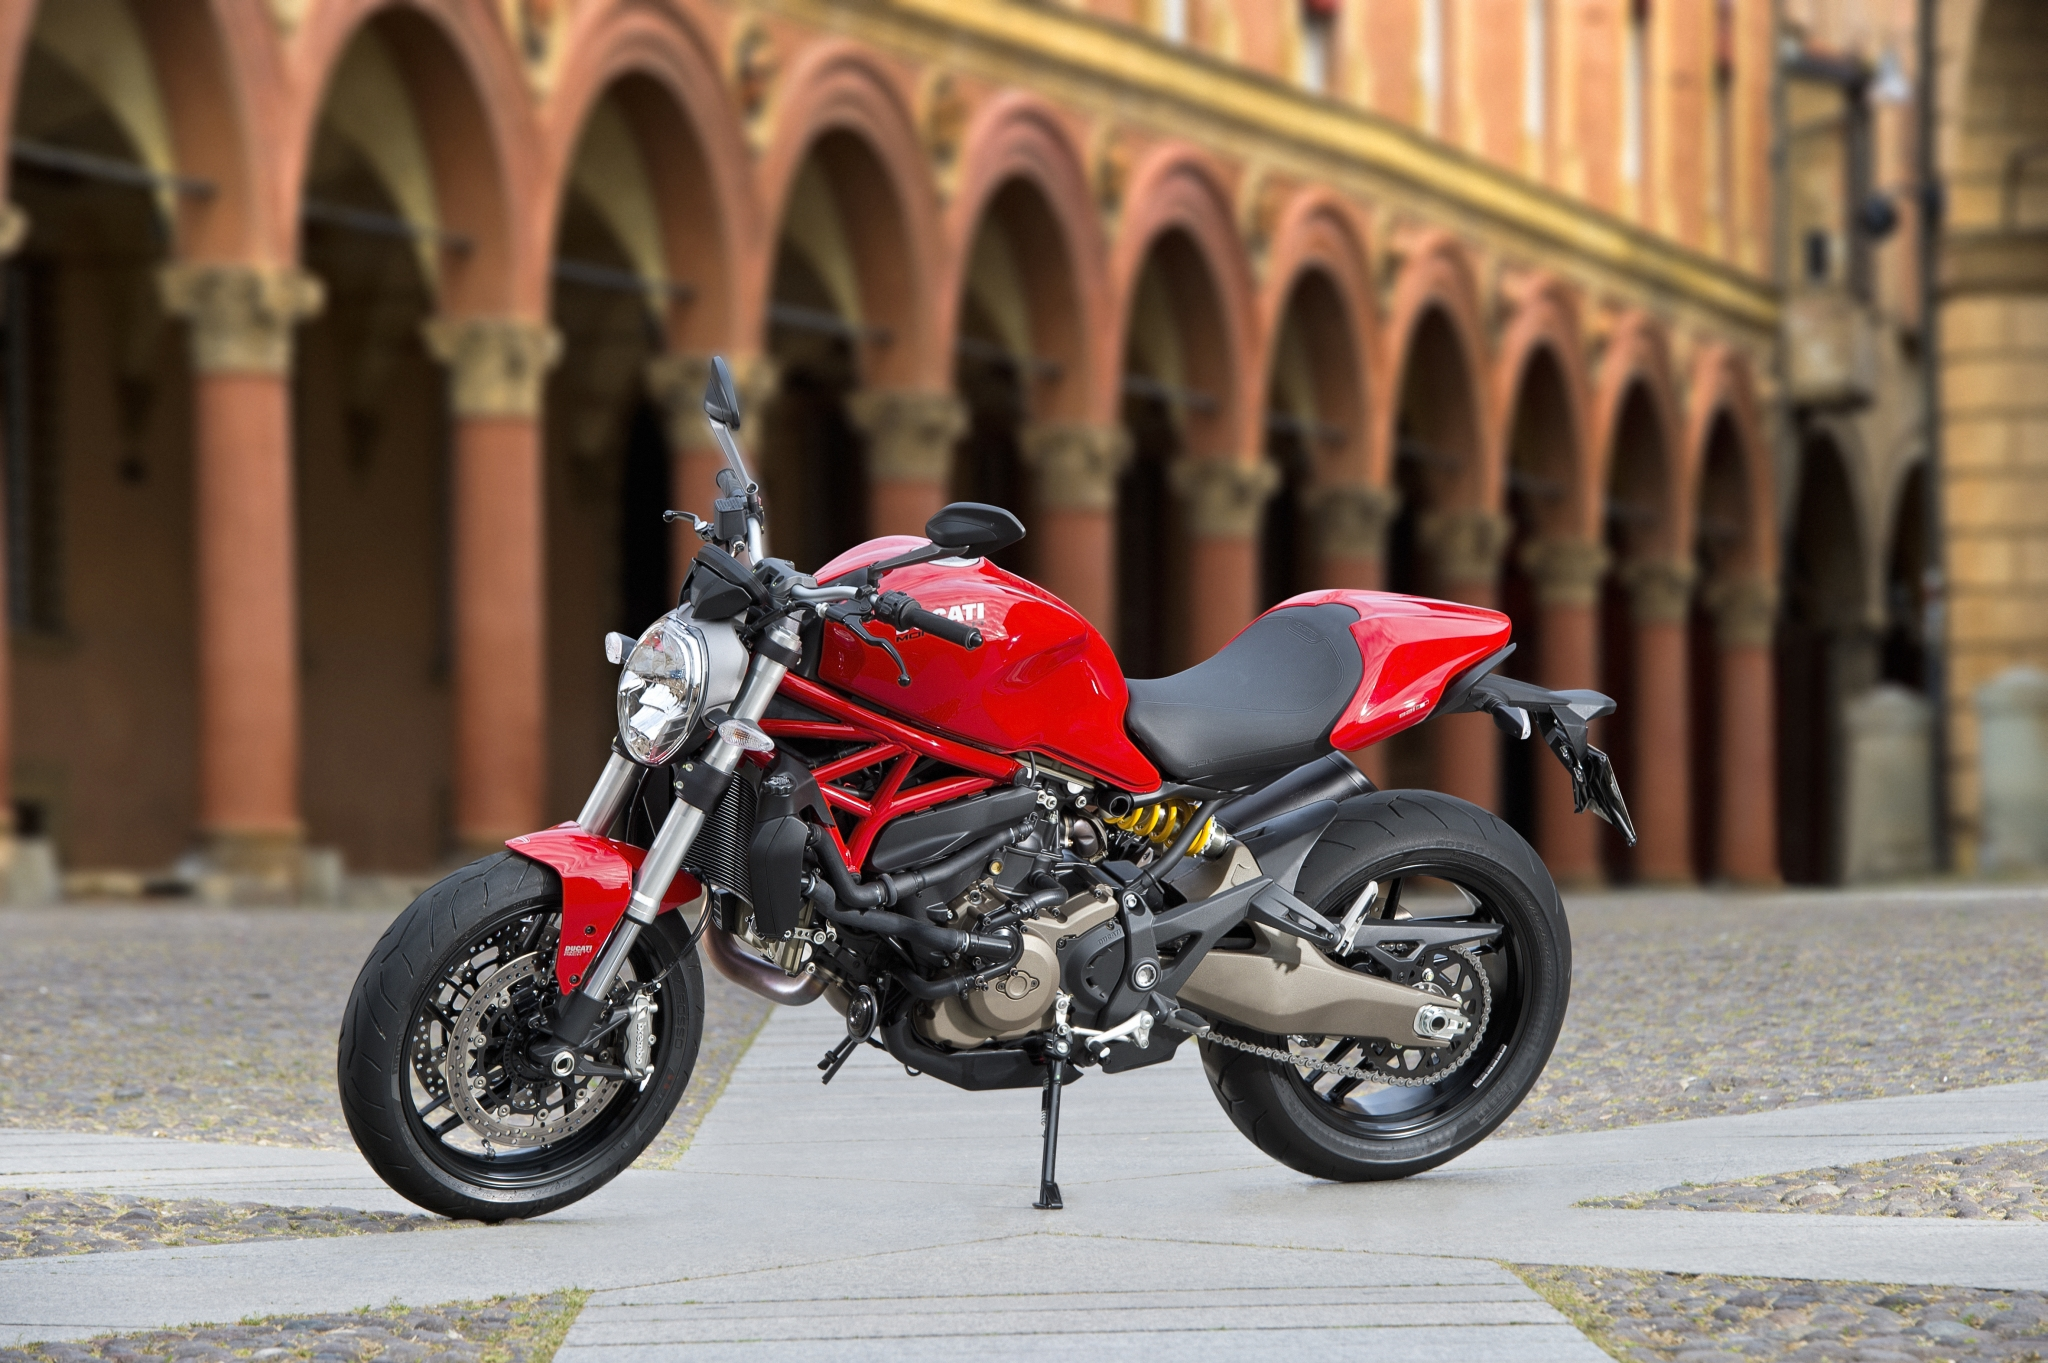 Ducati Monster 821 images #79383